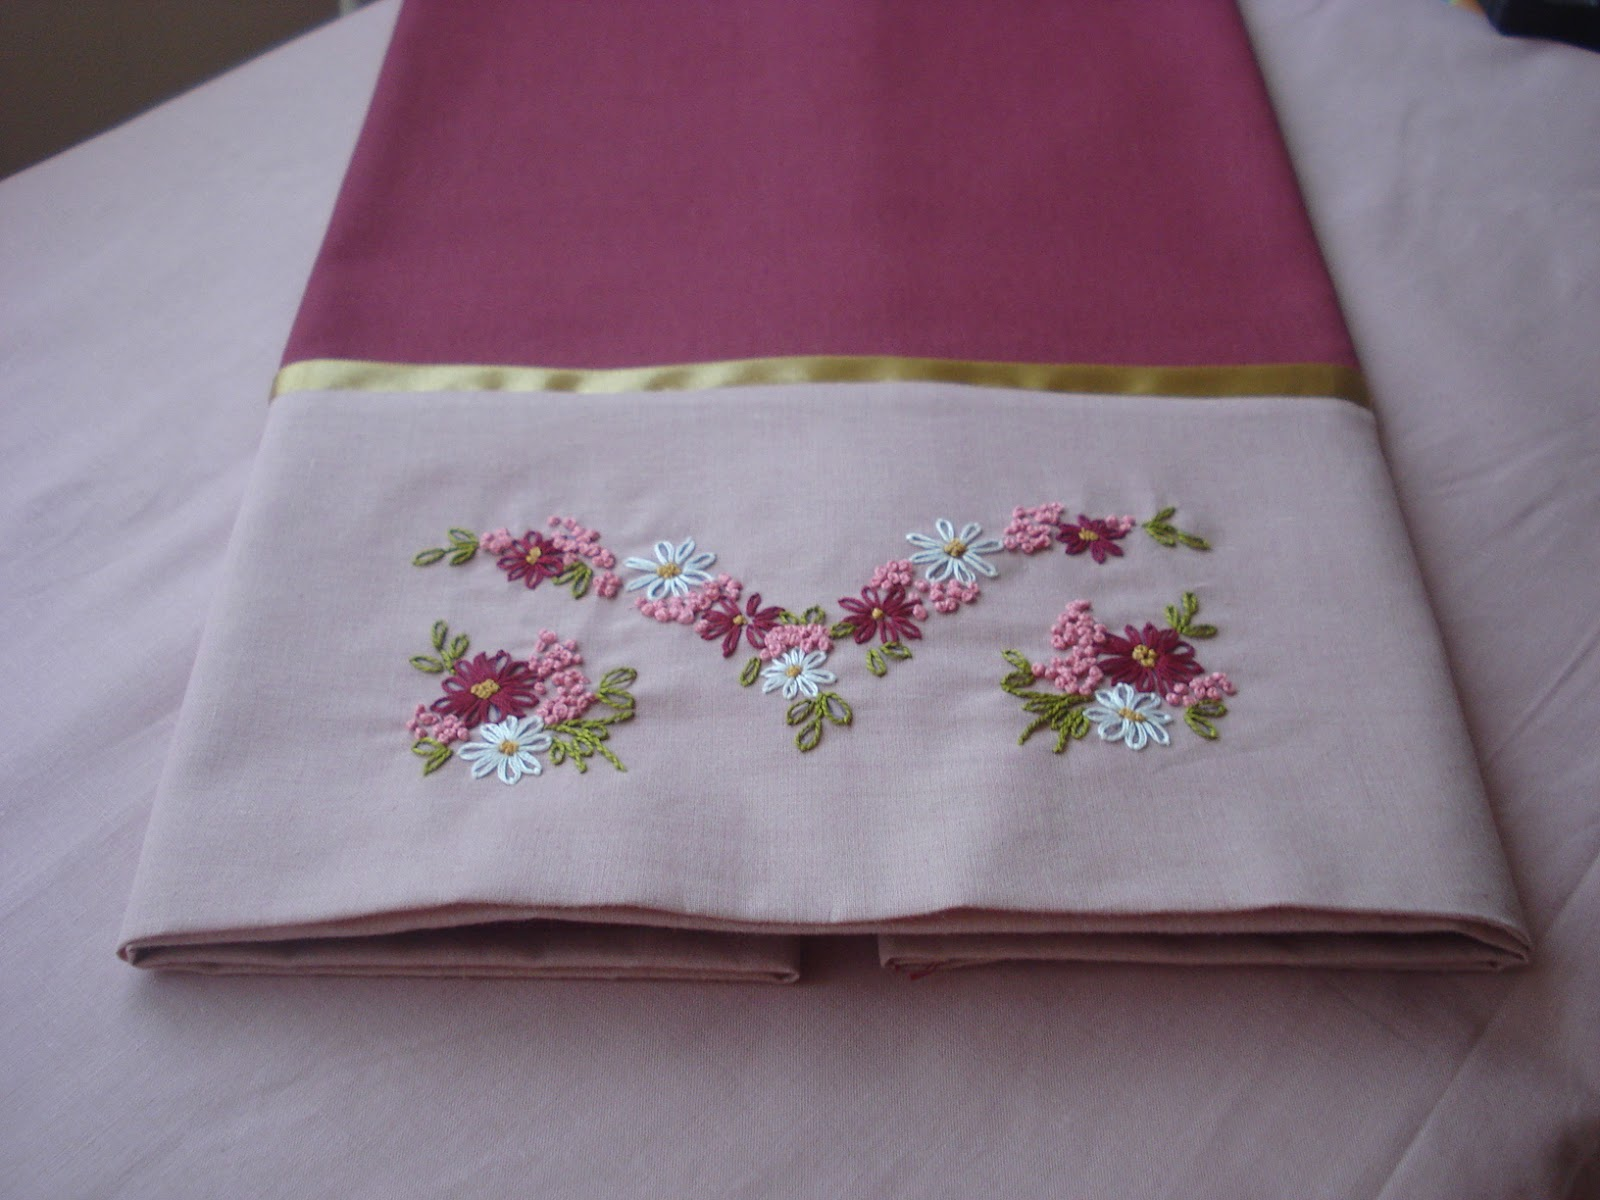 Bed sheet designs hand embroidery - Hand Embroidery On Pillow Cases